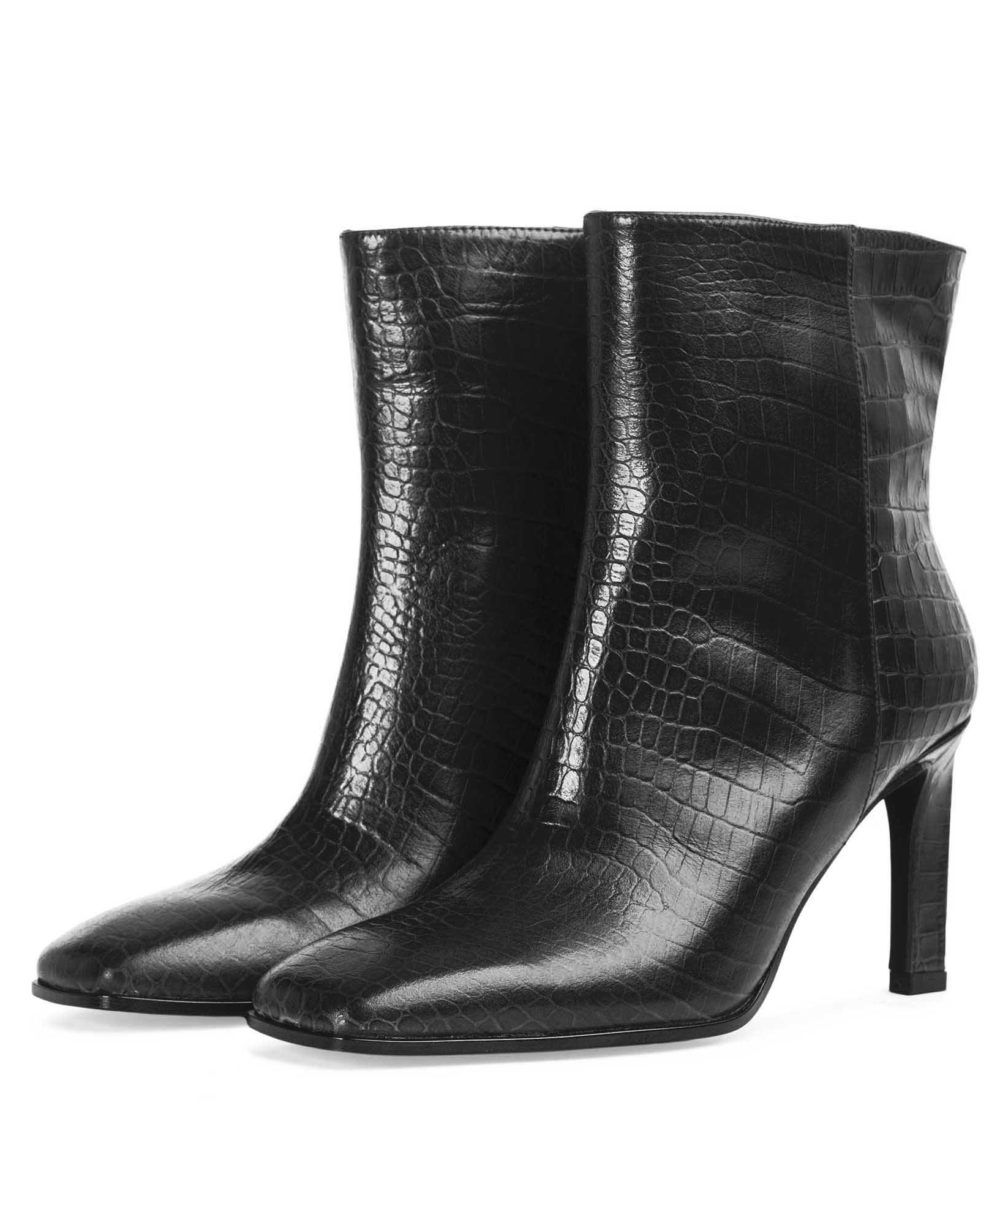 Leather booties Paco Gil  P-3888 Black Coco  D